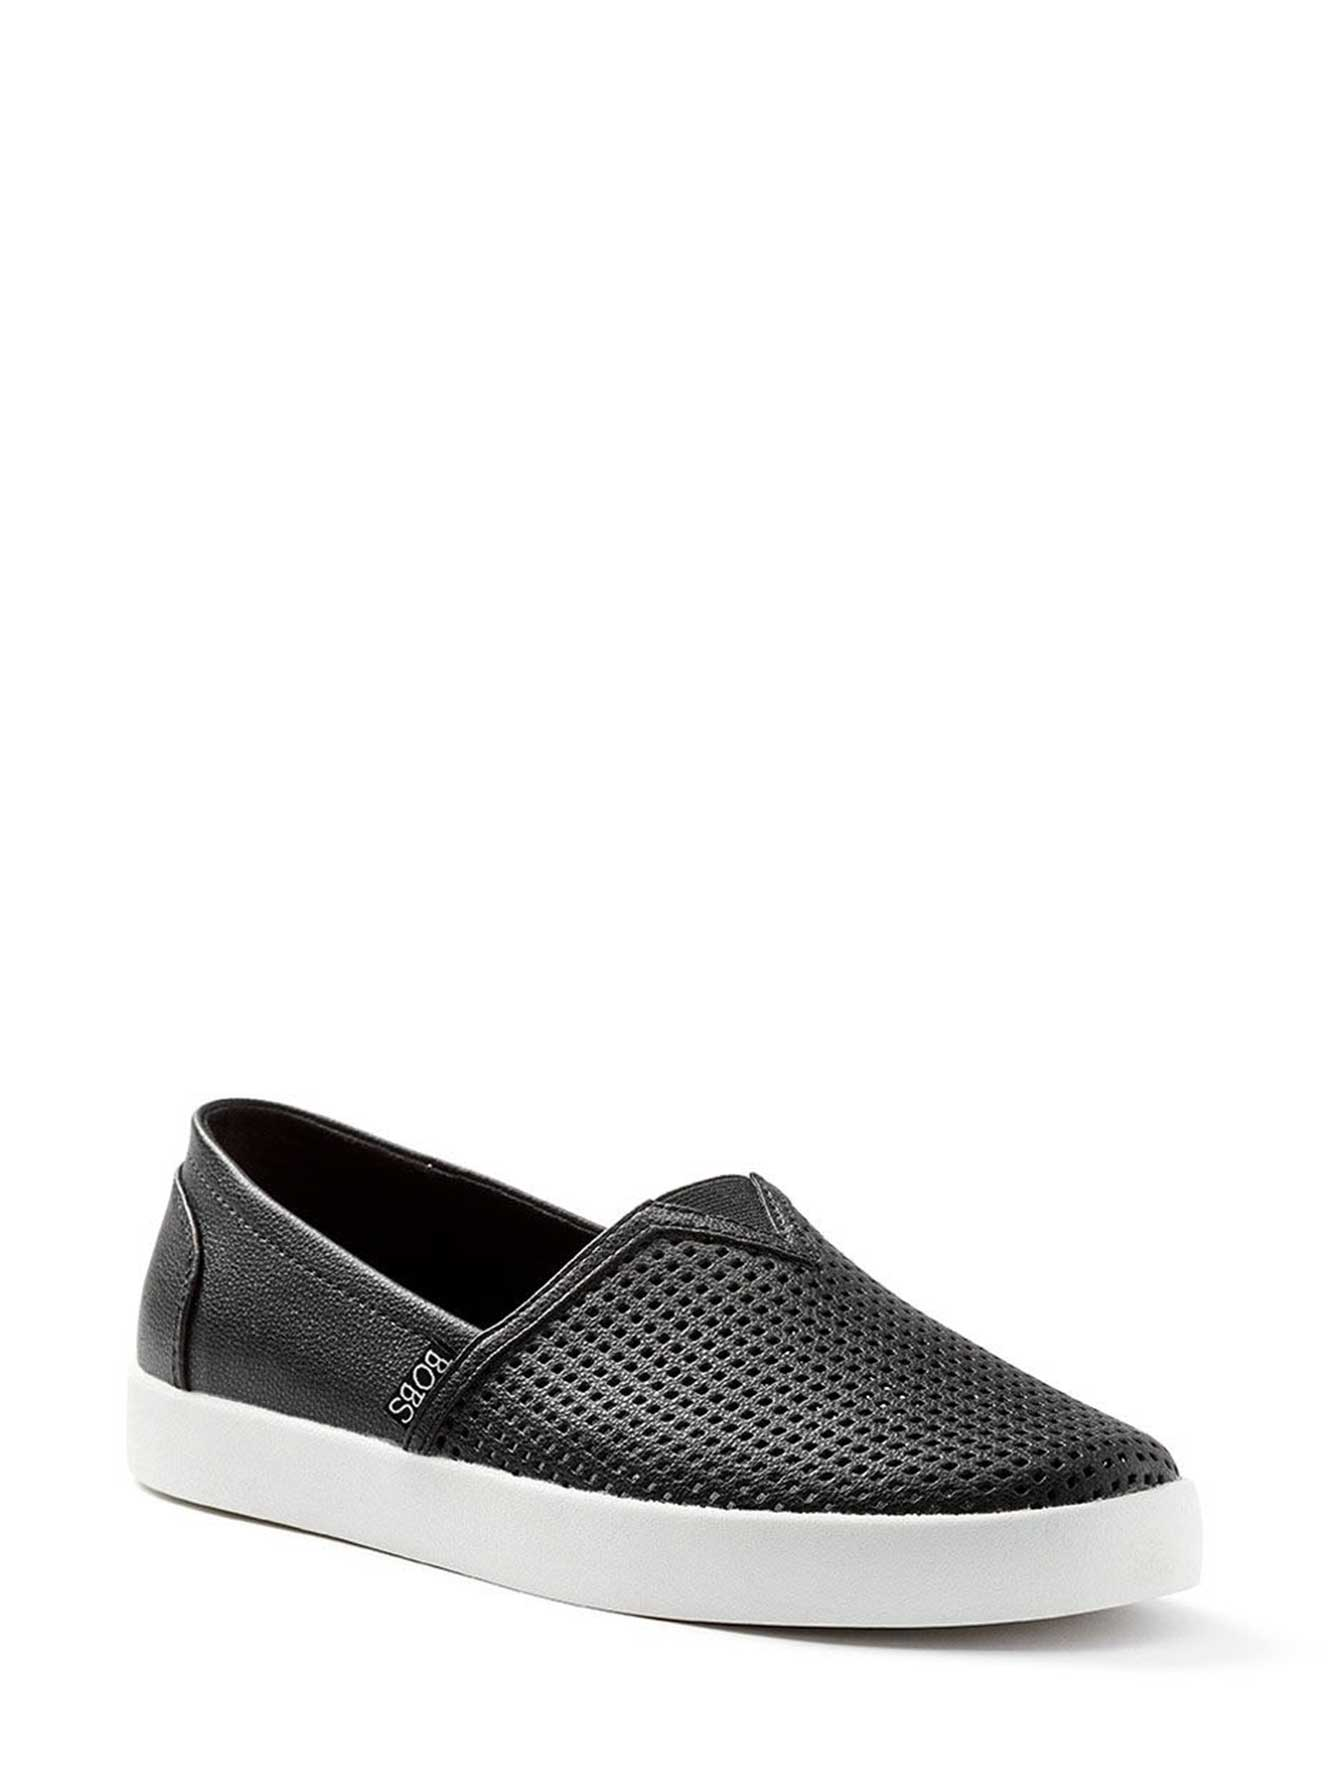 6c942e40536 Wide-Width Perforated Slip On Shoes - BOBS from Skechers